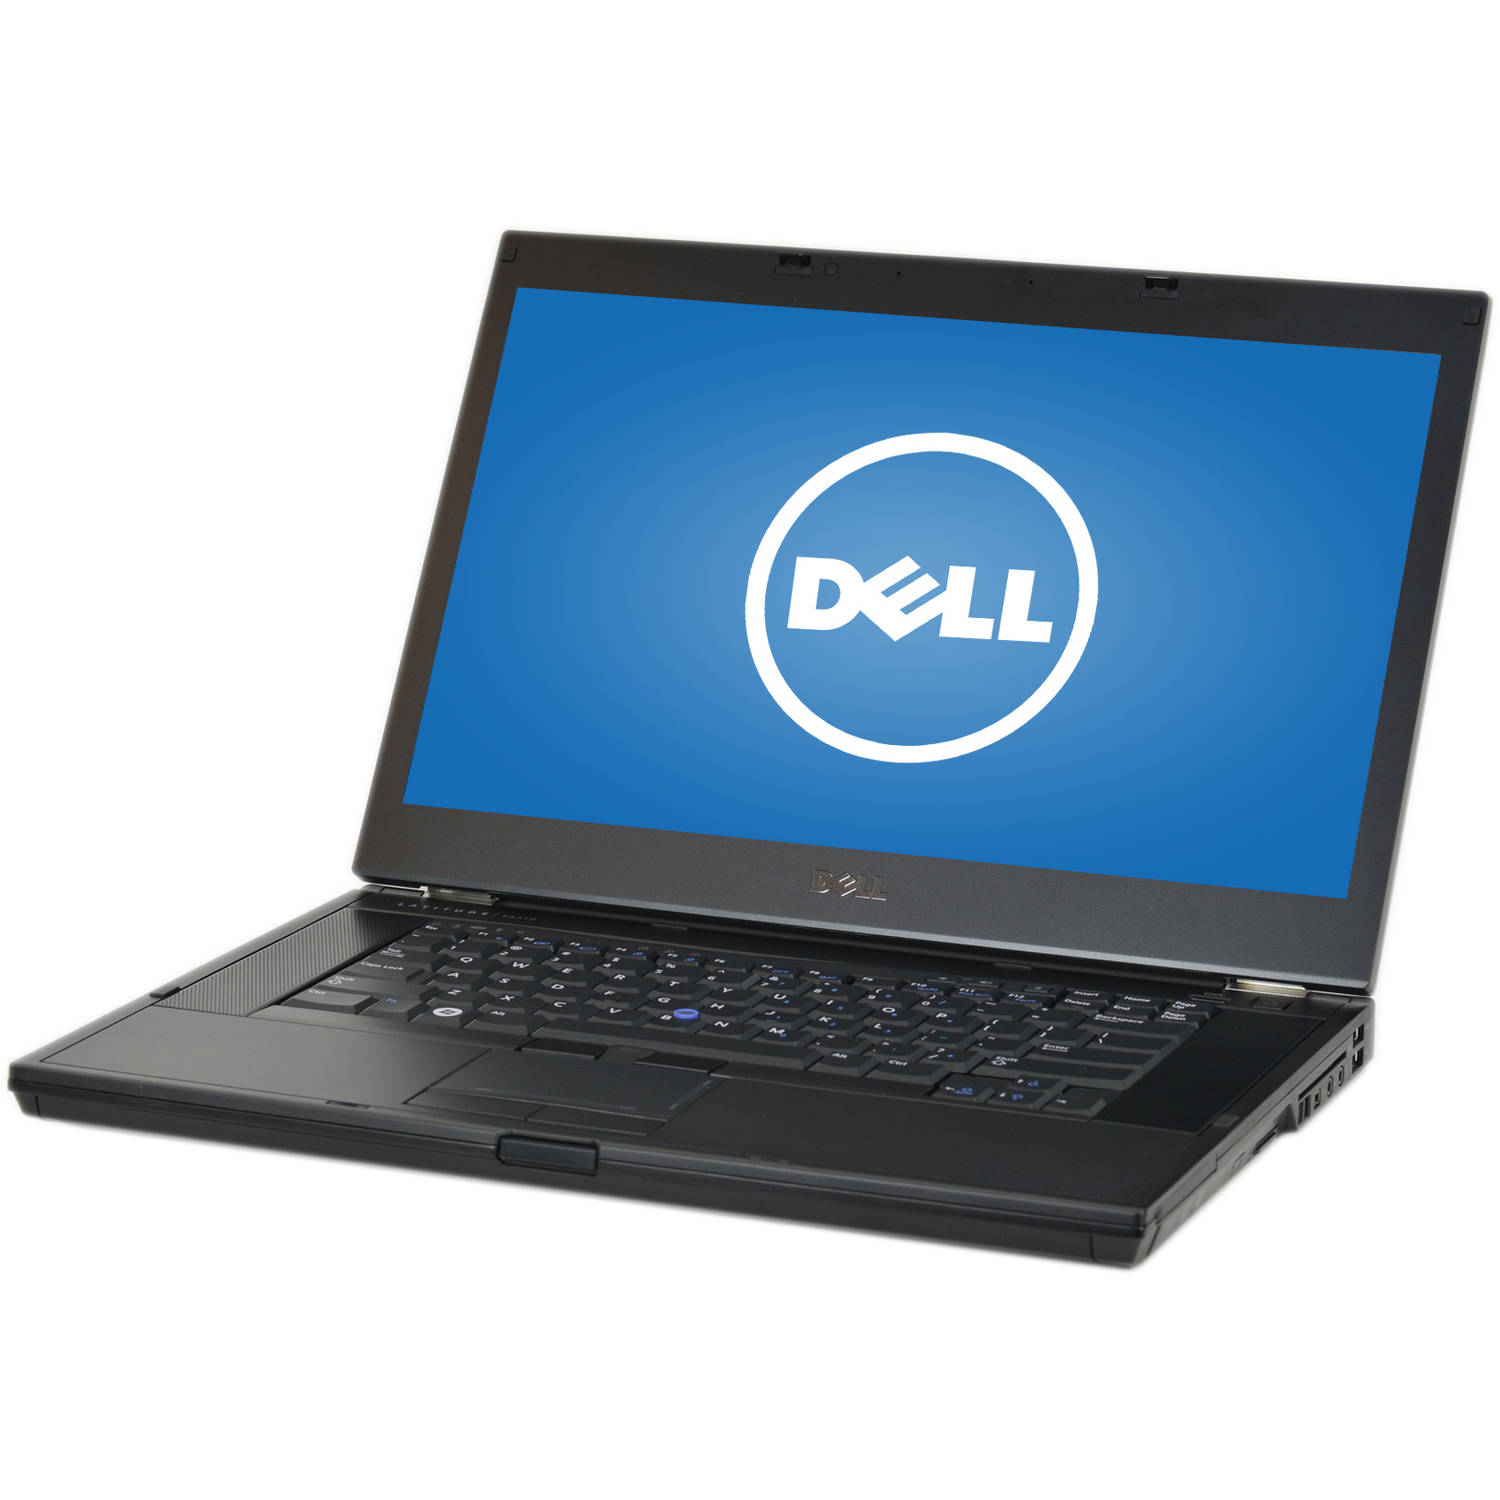 "Refurbished Dell Silver 15.6"" Latitude E6510 Laptop PC with Intel Core i5-520"